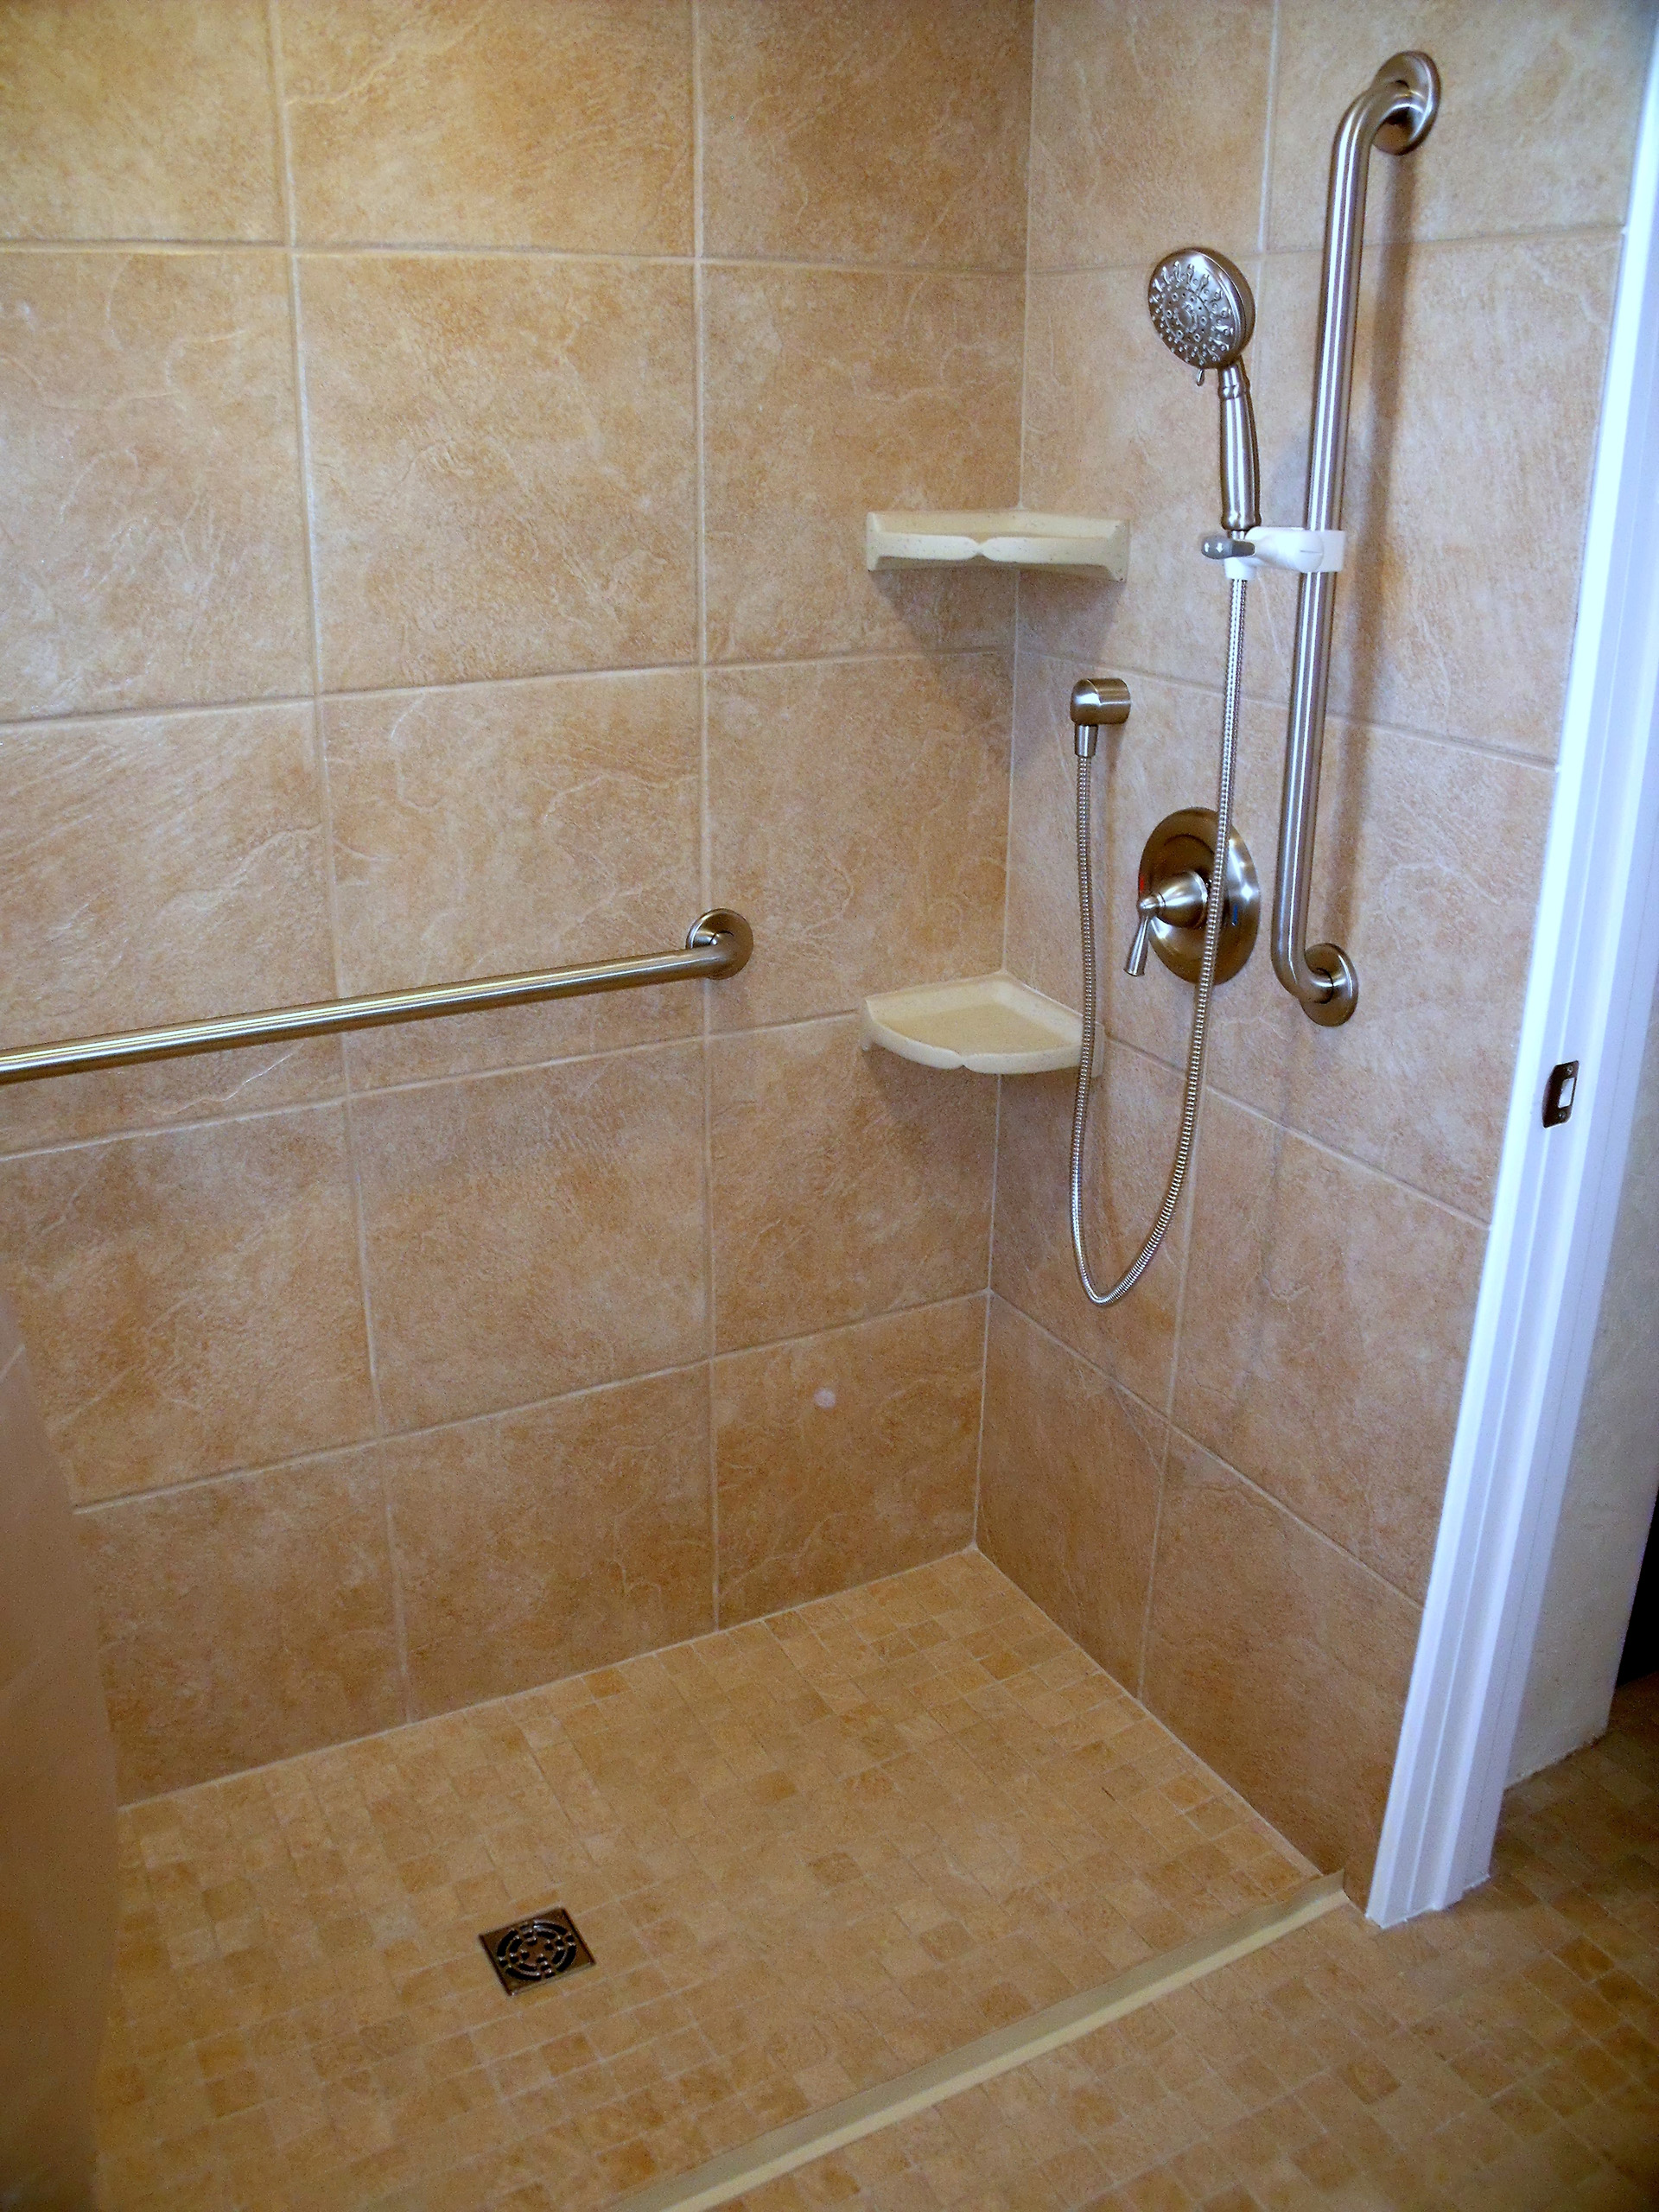 San Diego\'s Premiere Grab Bars and Handrails Installer